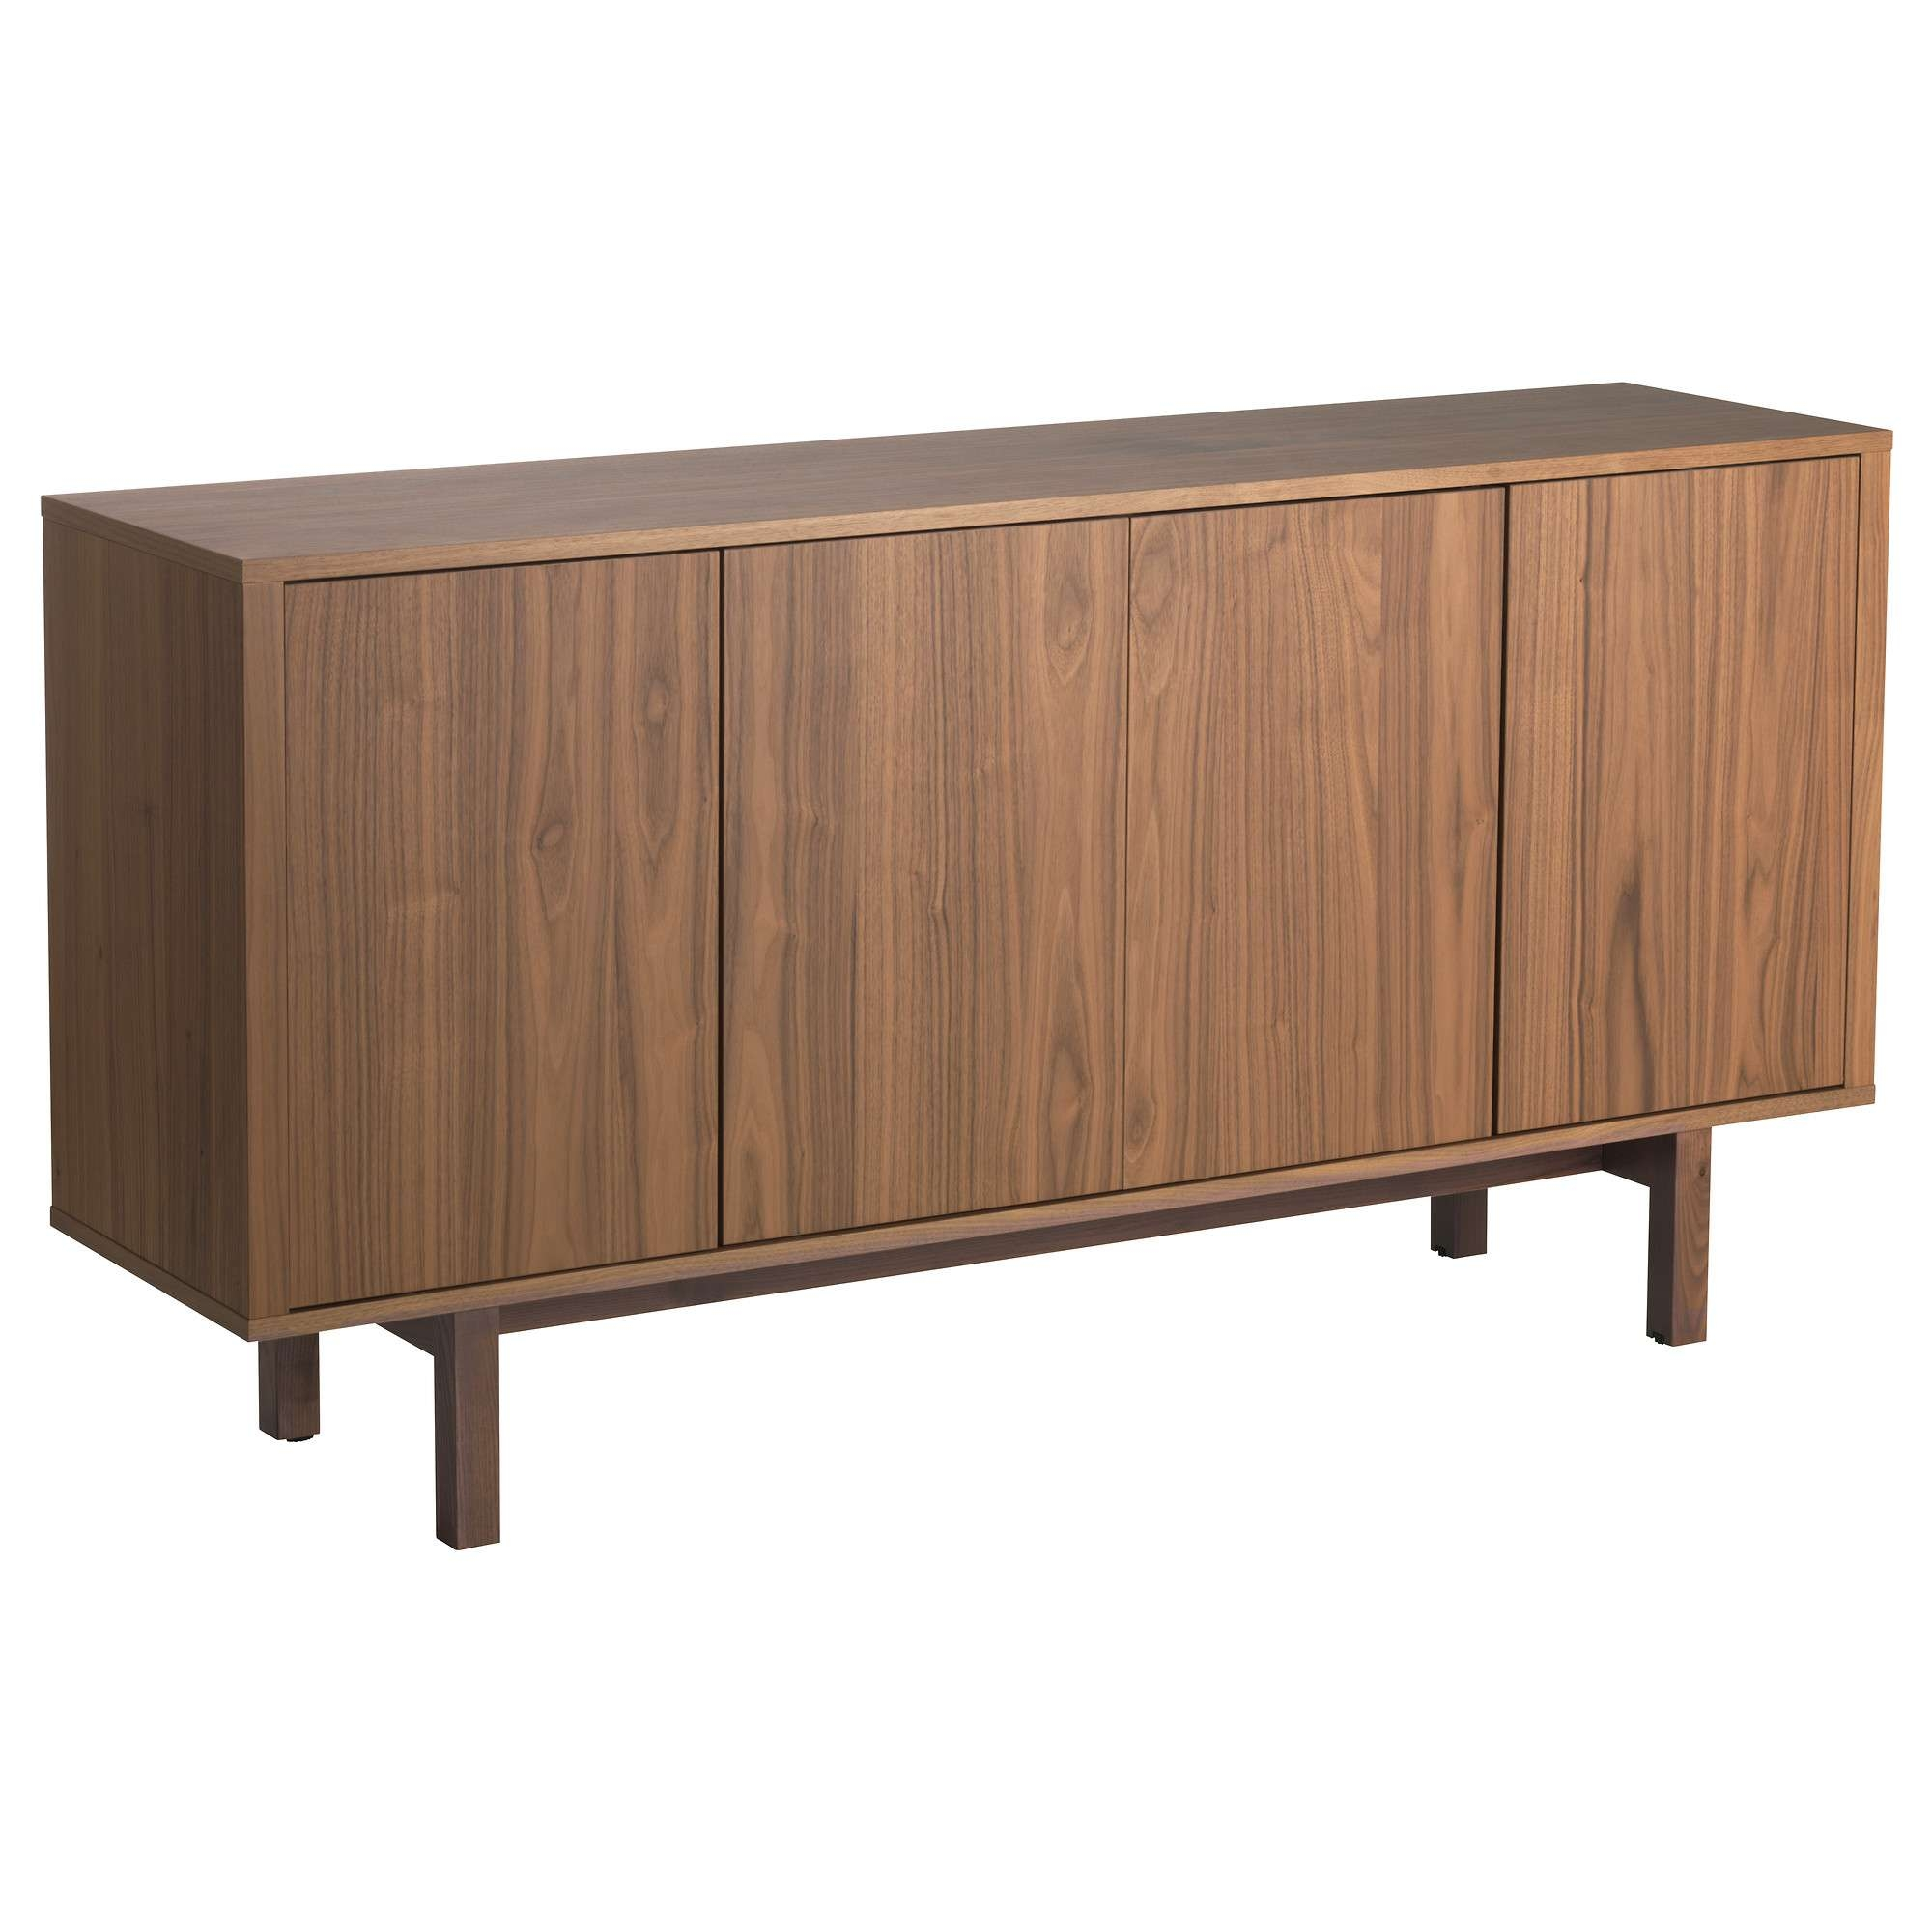 Stockholm Sideboard Walnut Veneer 160X81 Cm – Ikea Intended For Sideboards (View 19 of 20)